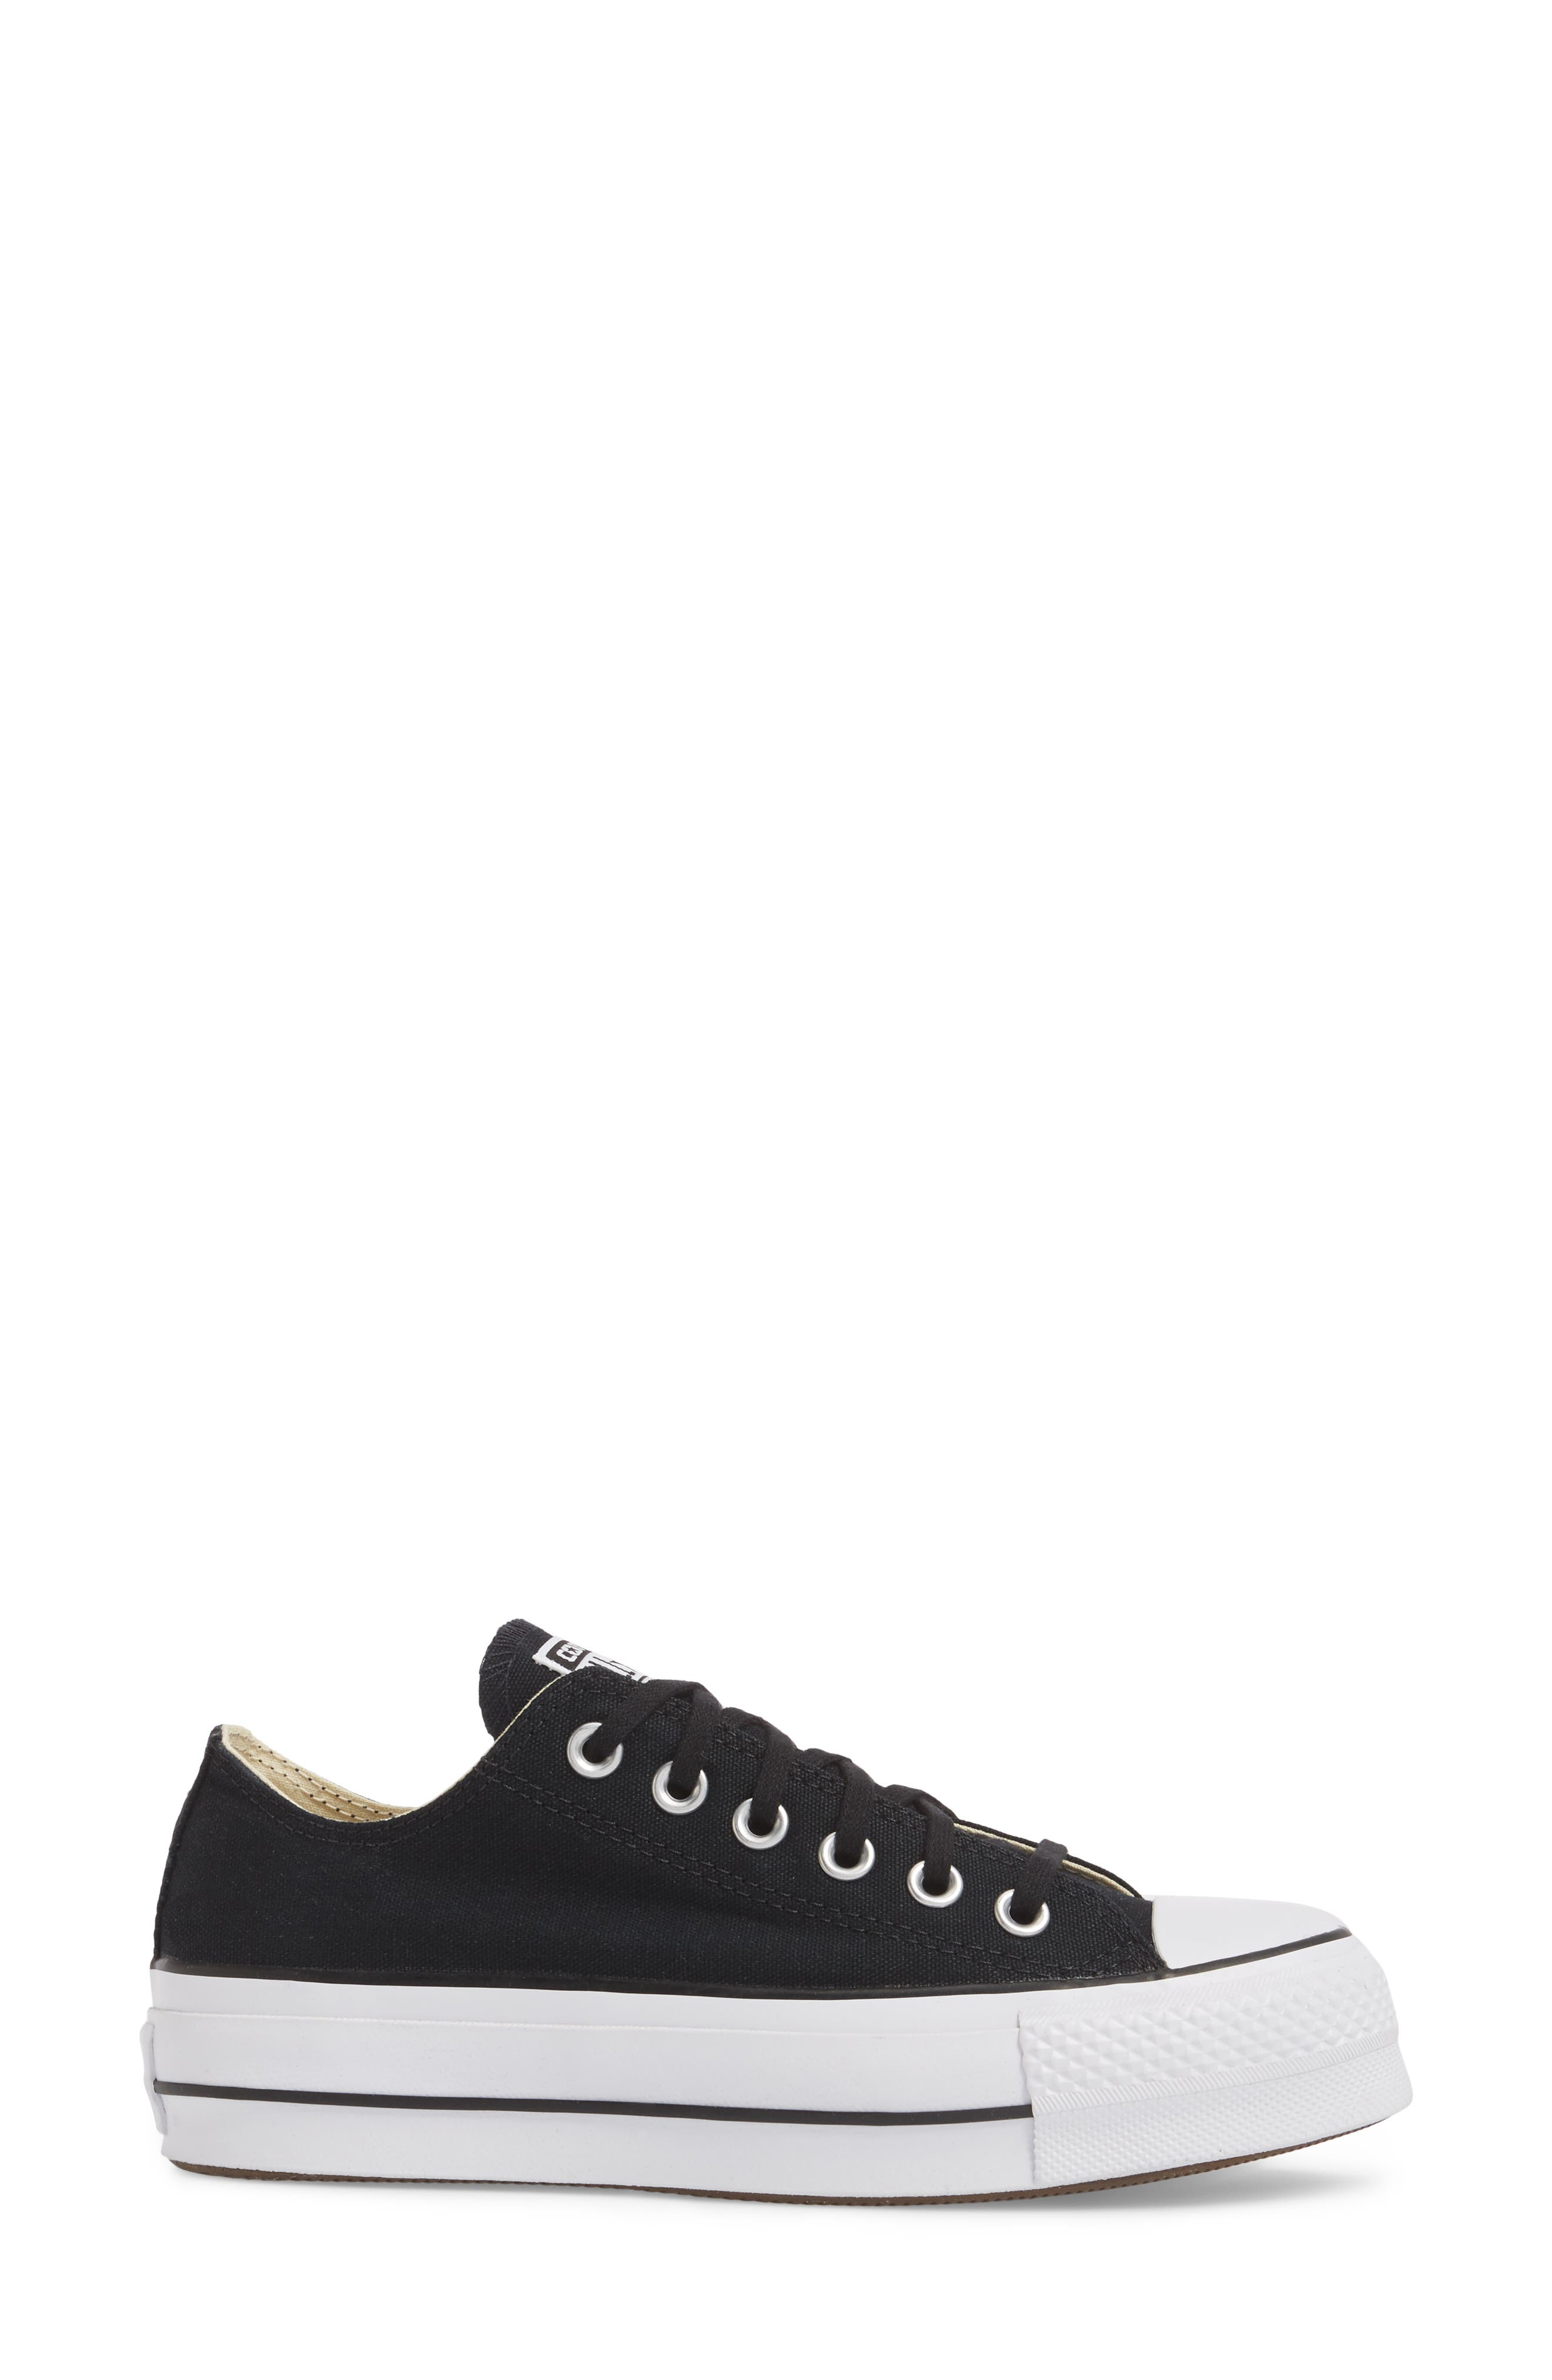 Chuck Taylor<sup>®</sup> All Star<sup>®</sup> Platform Sneaker,                             Alternate thumbnail 3, color,                             BLACK/ WHITE/ WHITE